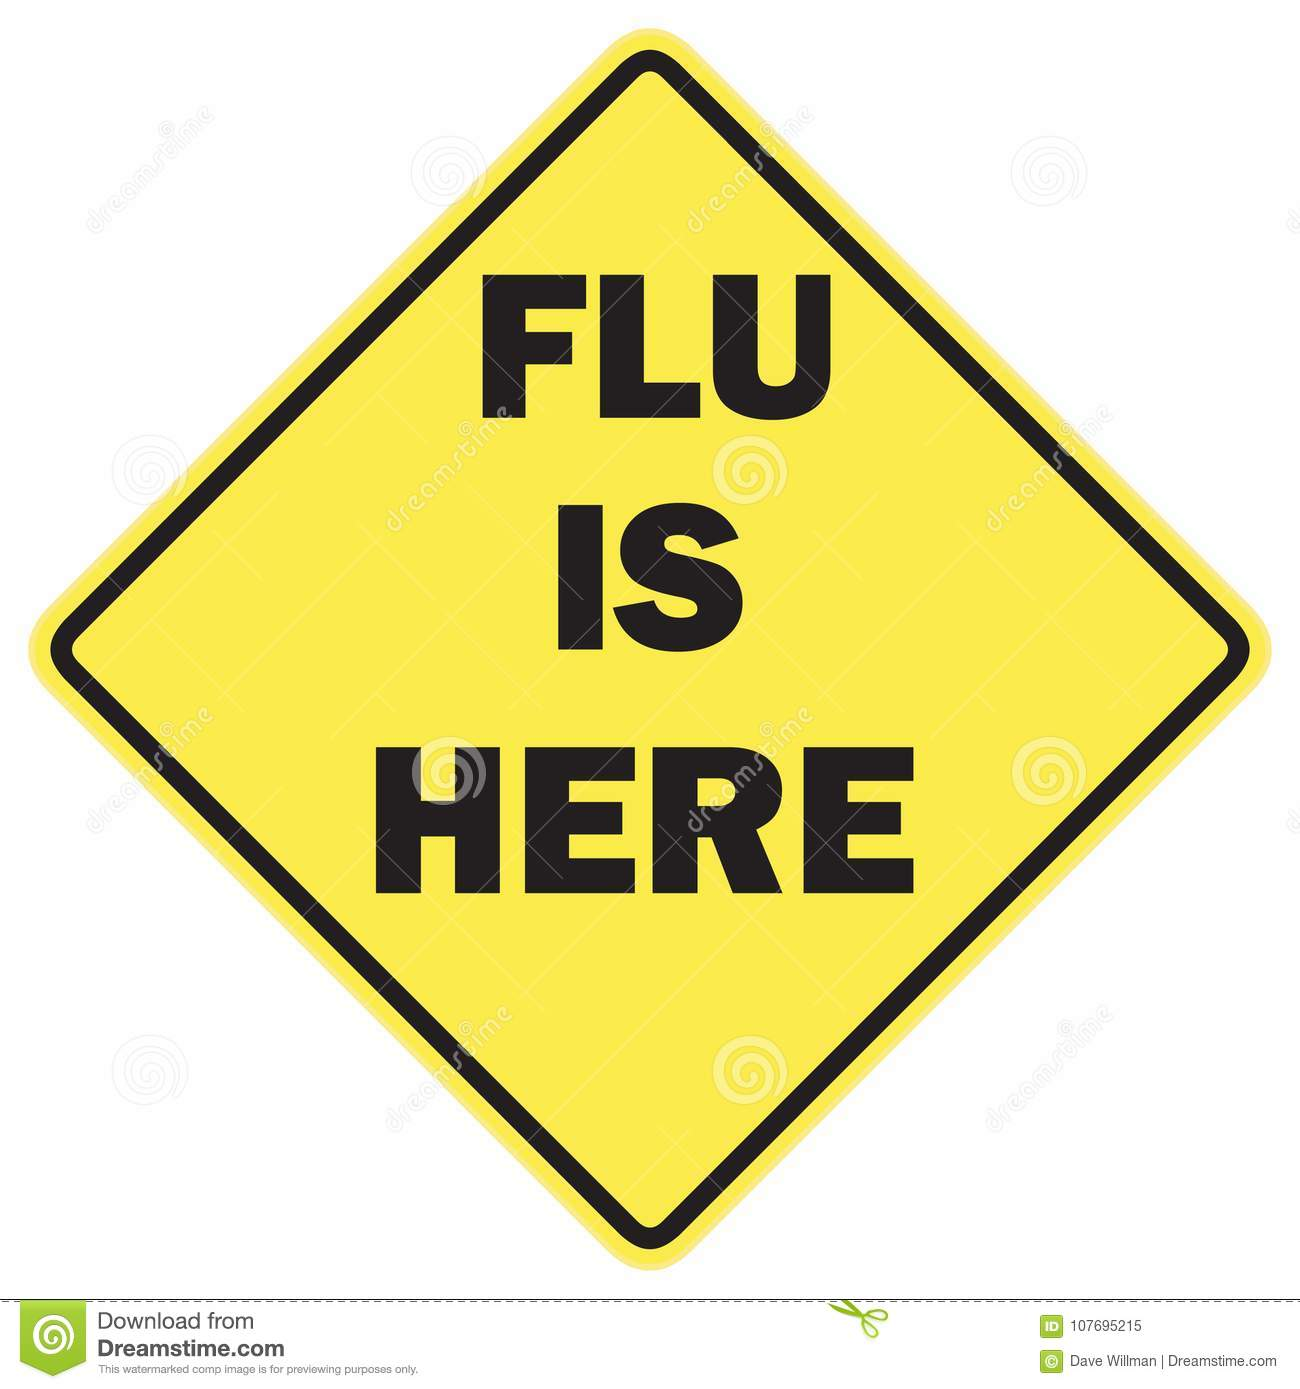 Flu is here warning sign